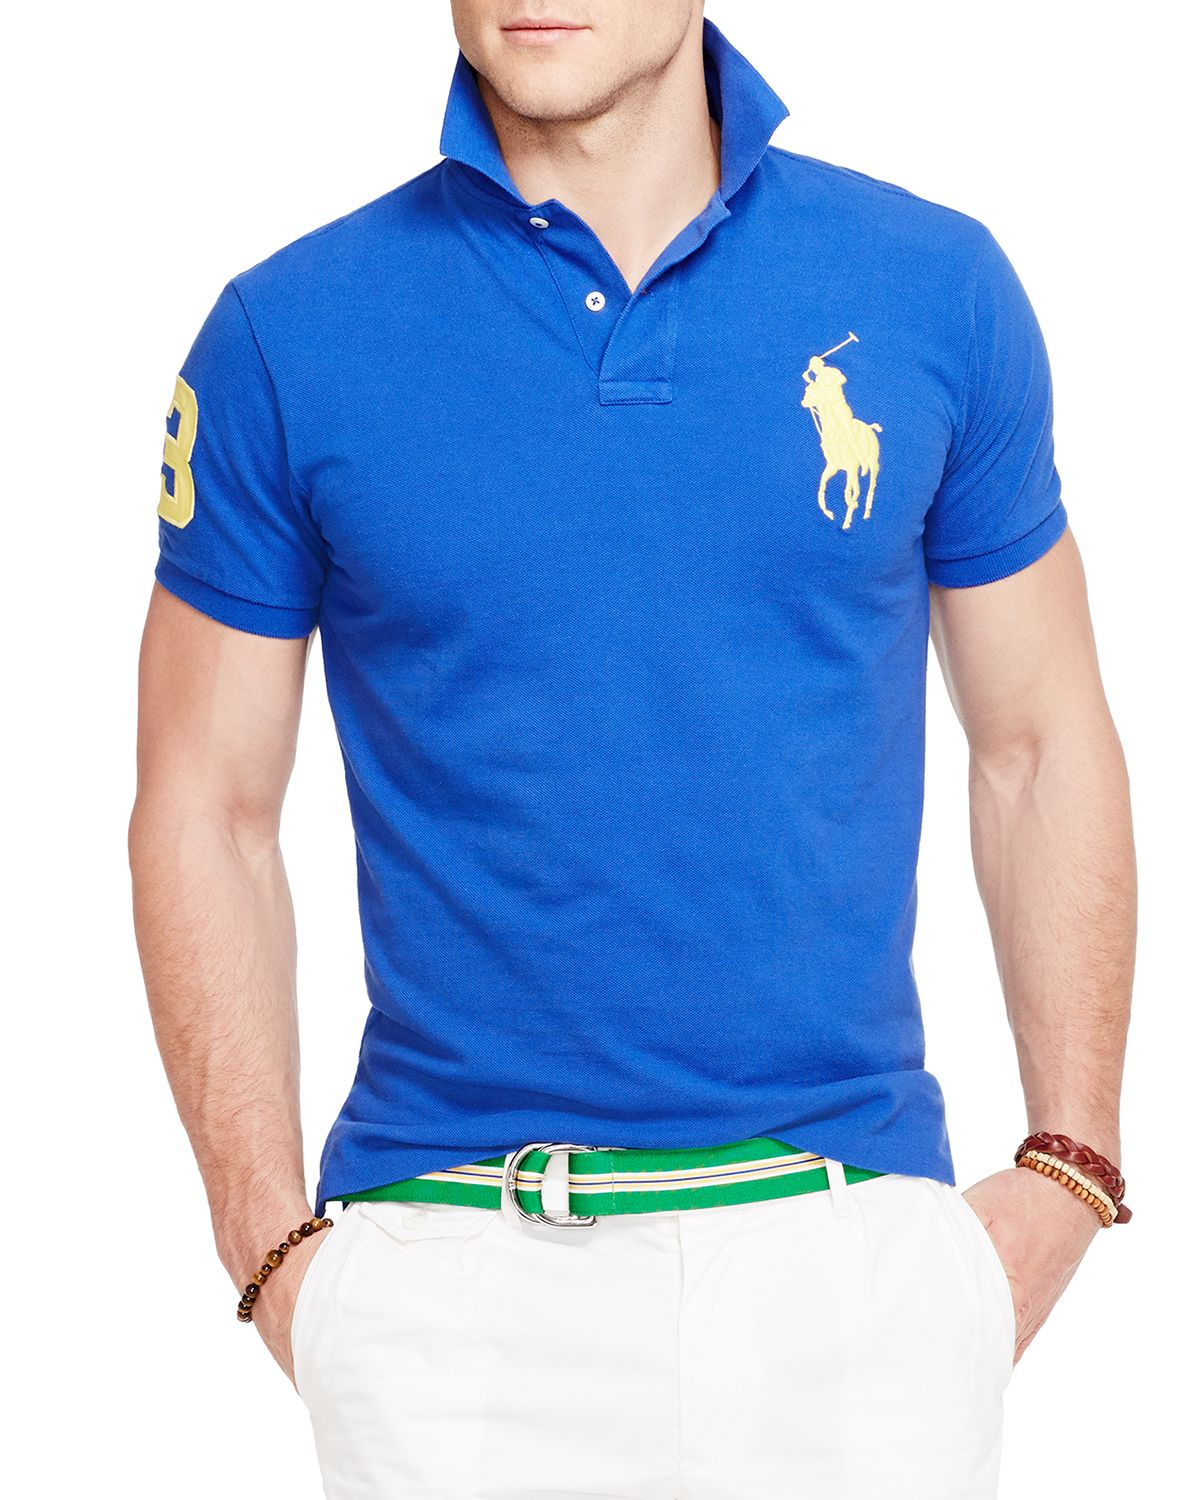 Ralph lauren Polo Custom Fit Big Pony Mesh Polo Shirt - Slim Fit in Blue for